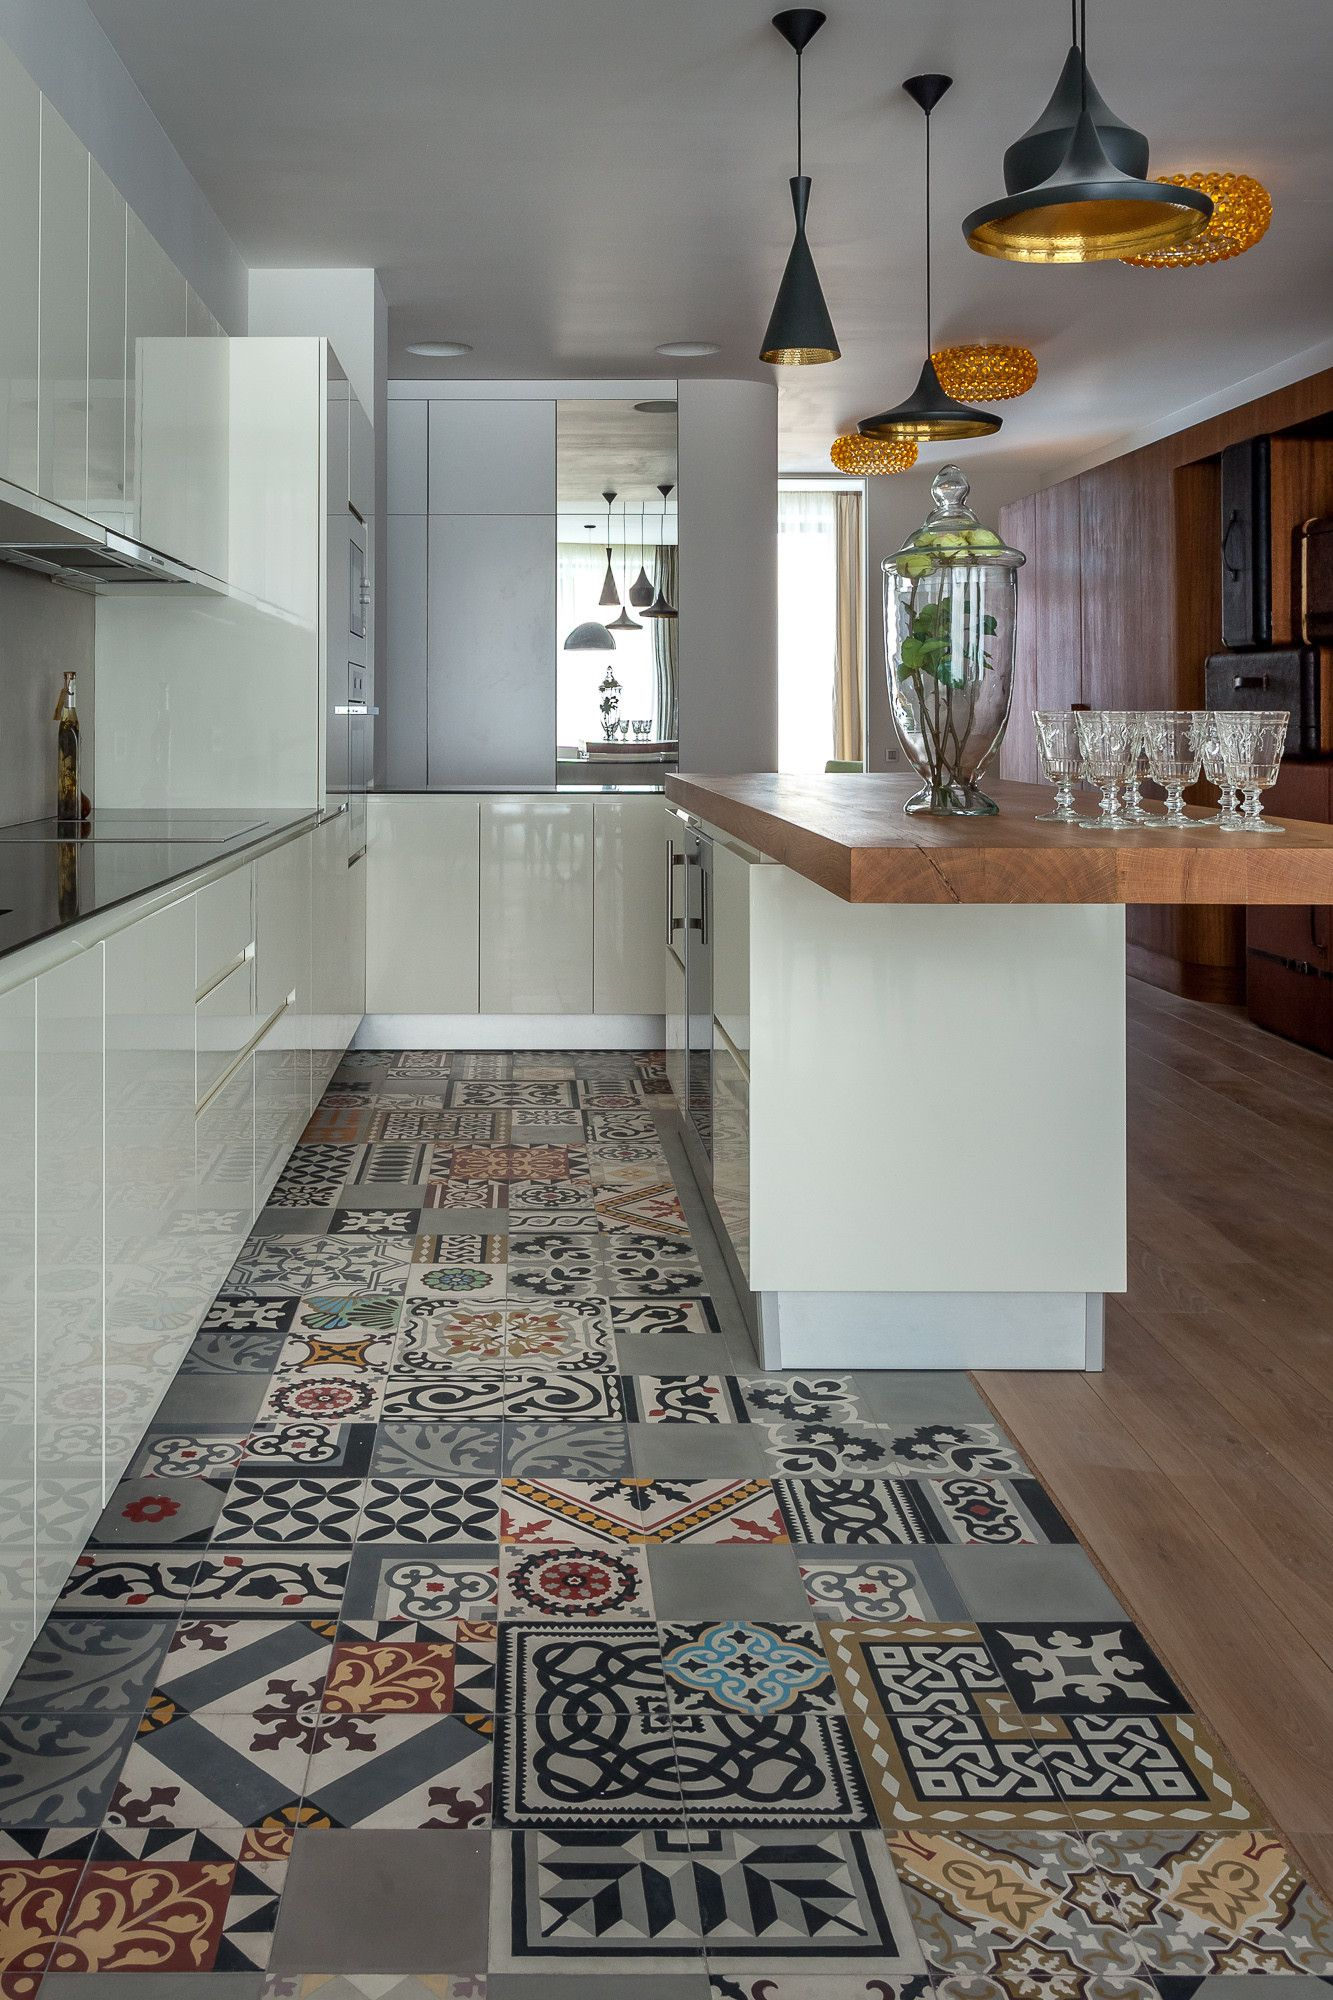 18 beautiful examples of kitchen floor tile 4 travelers spirit dailygadgetfo Gallery